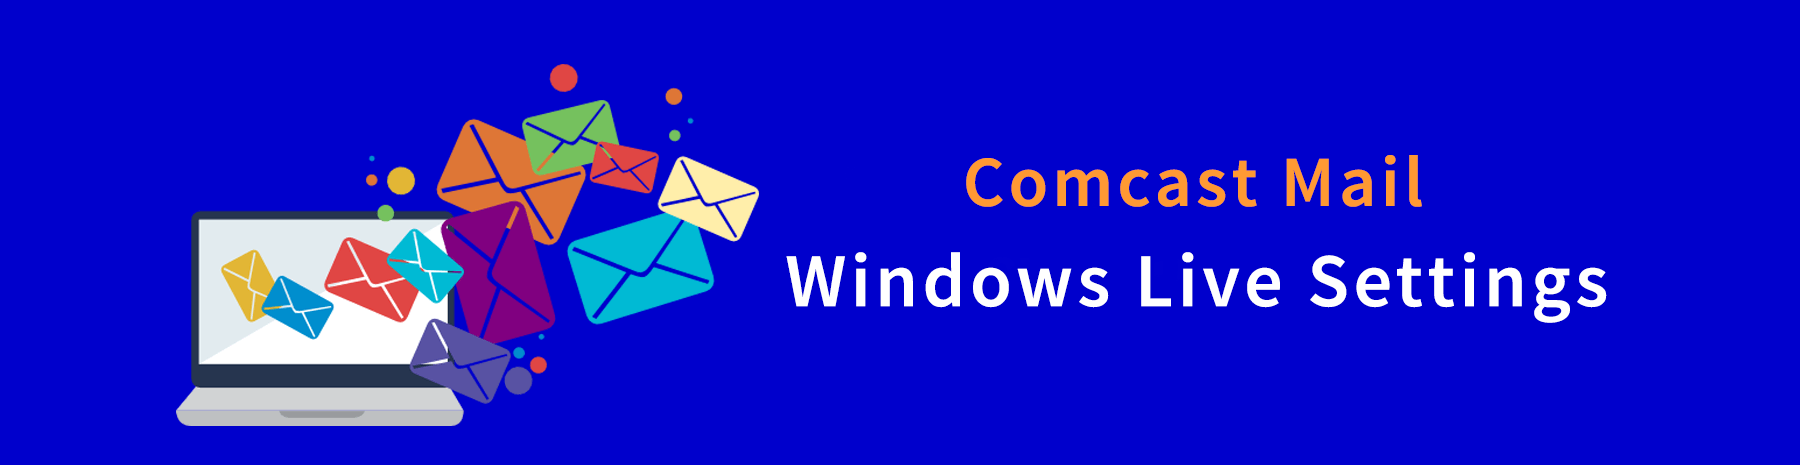 Comcast-Windows-Live-Mail-Settings-solution